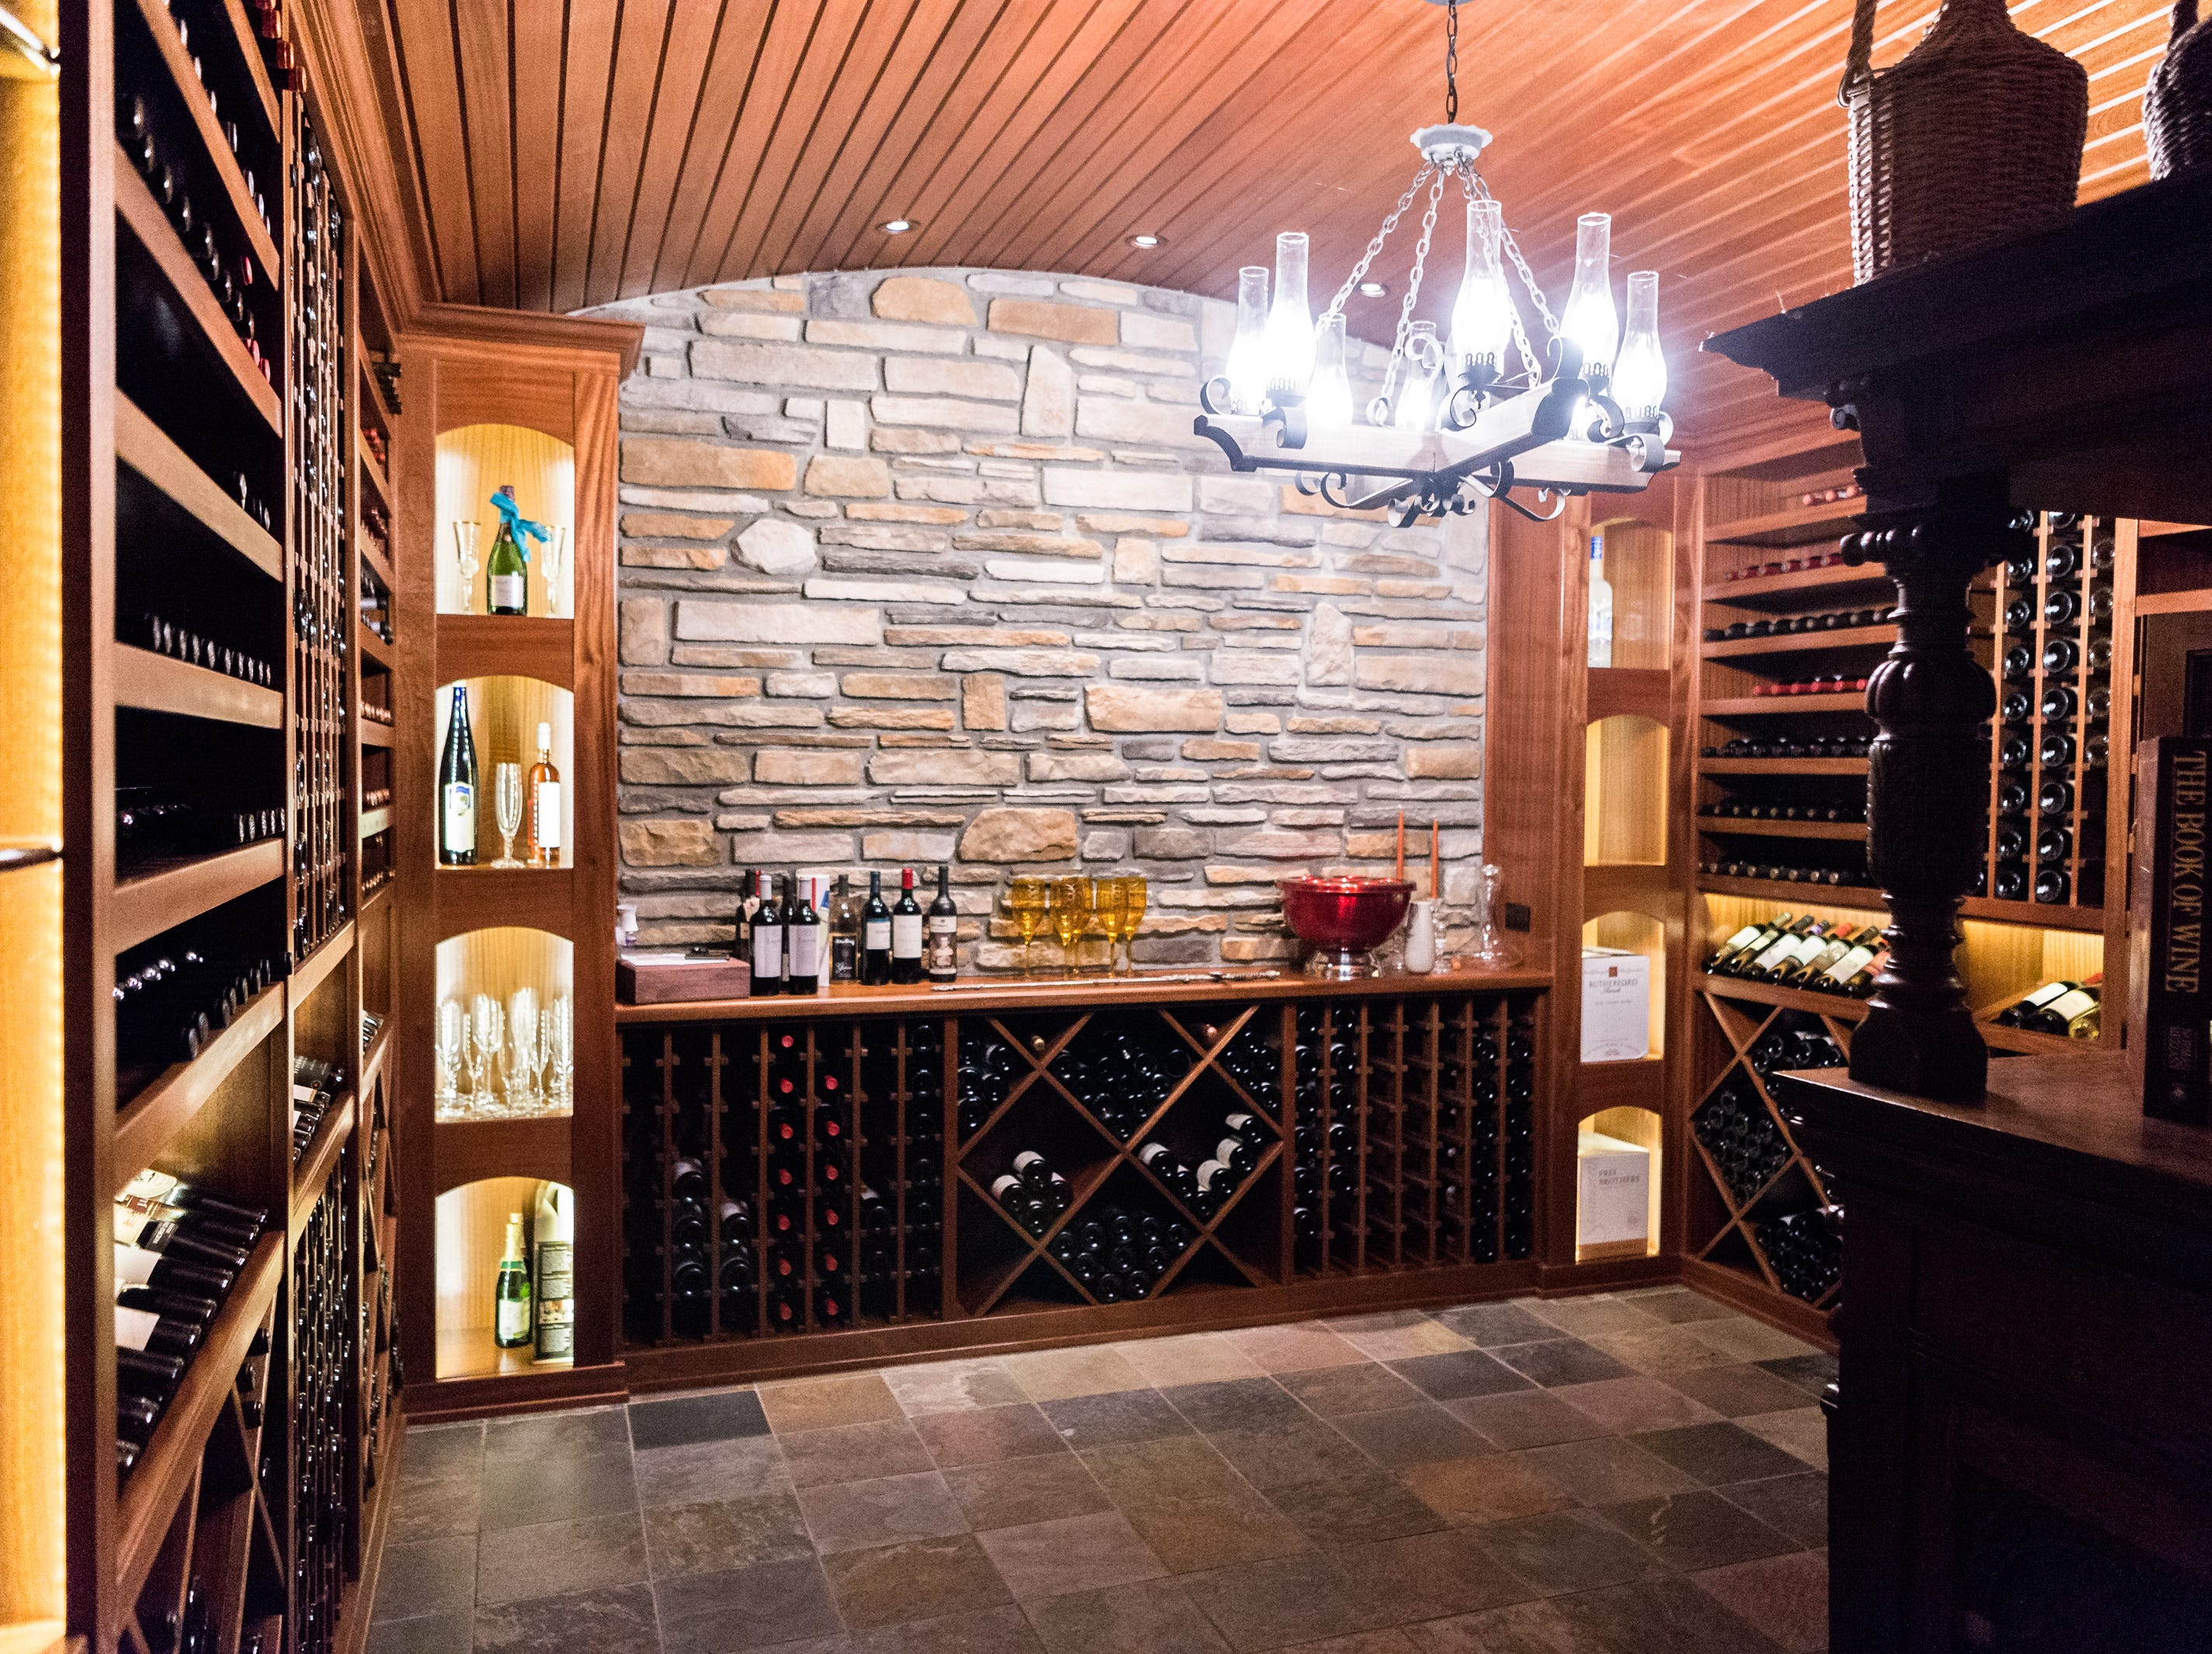 A wine cellar on the basement level of Dan and Belle Fangmeyer's log cabin in Waynesville.